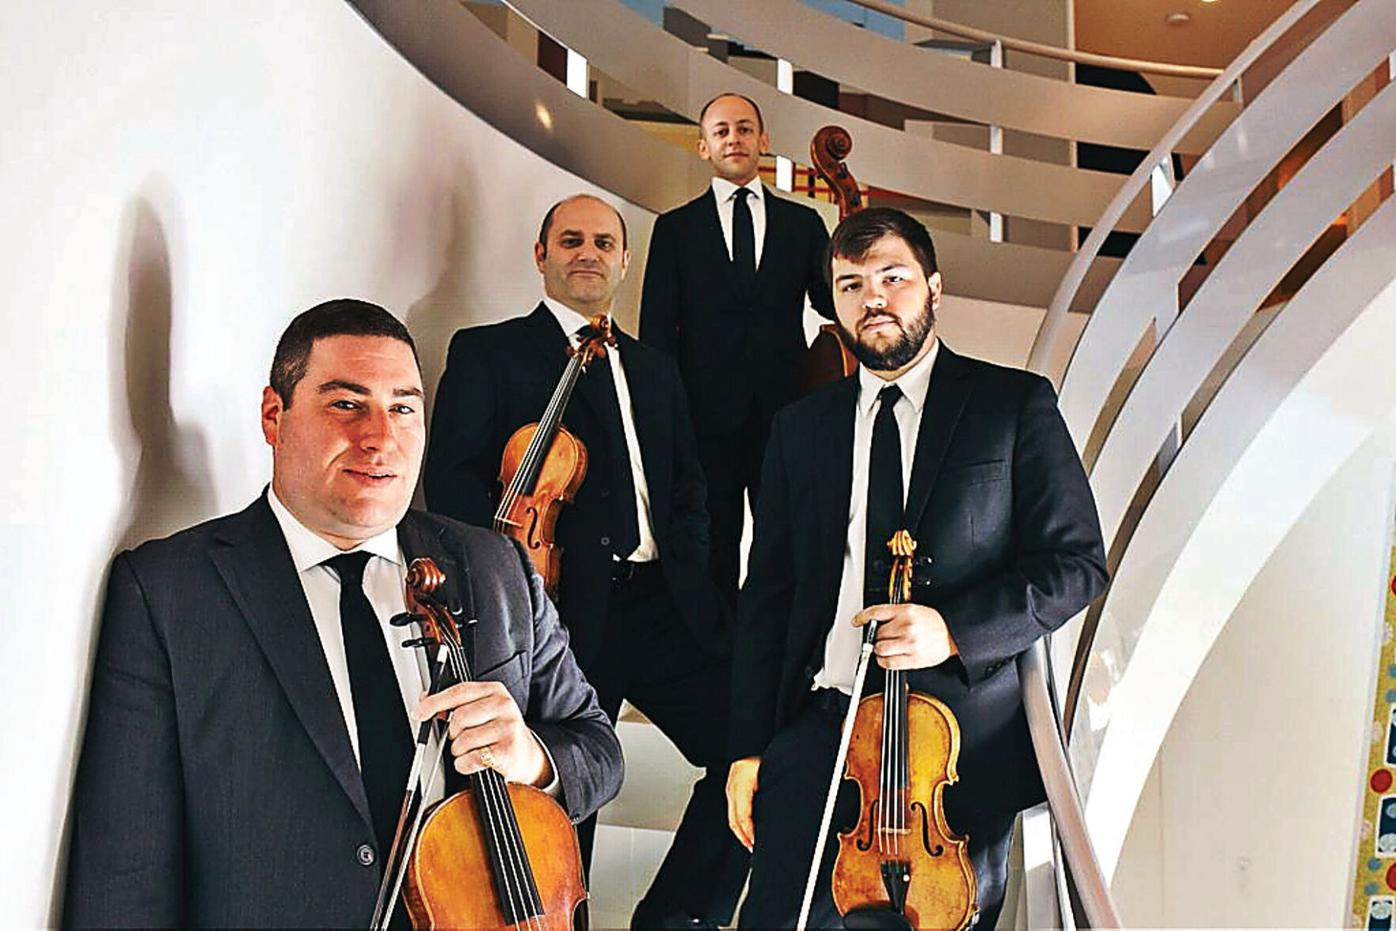 Classical music fall preview: A solid season with surprises